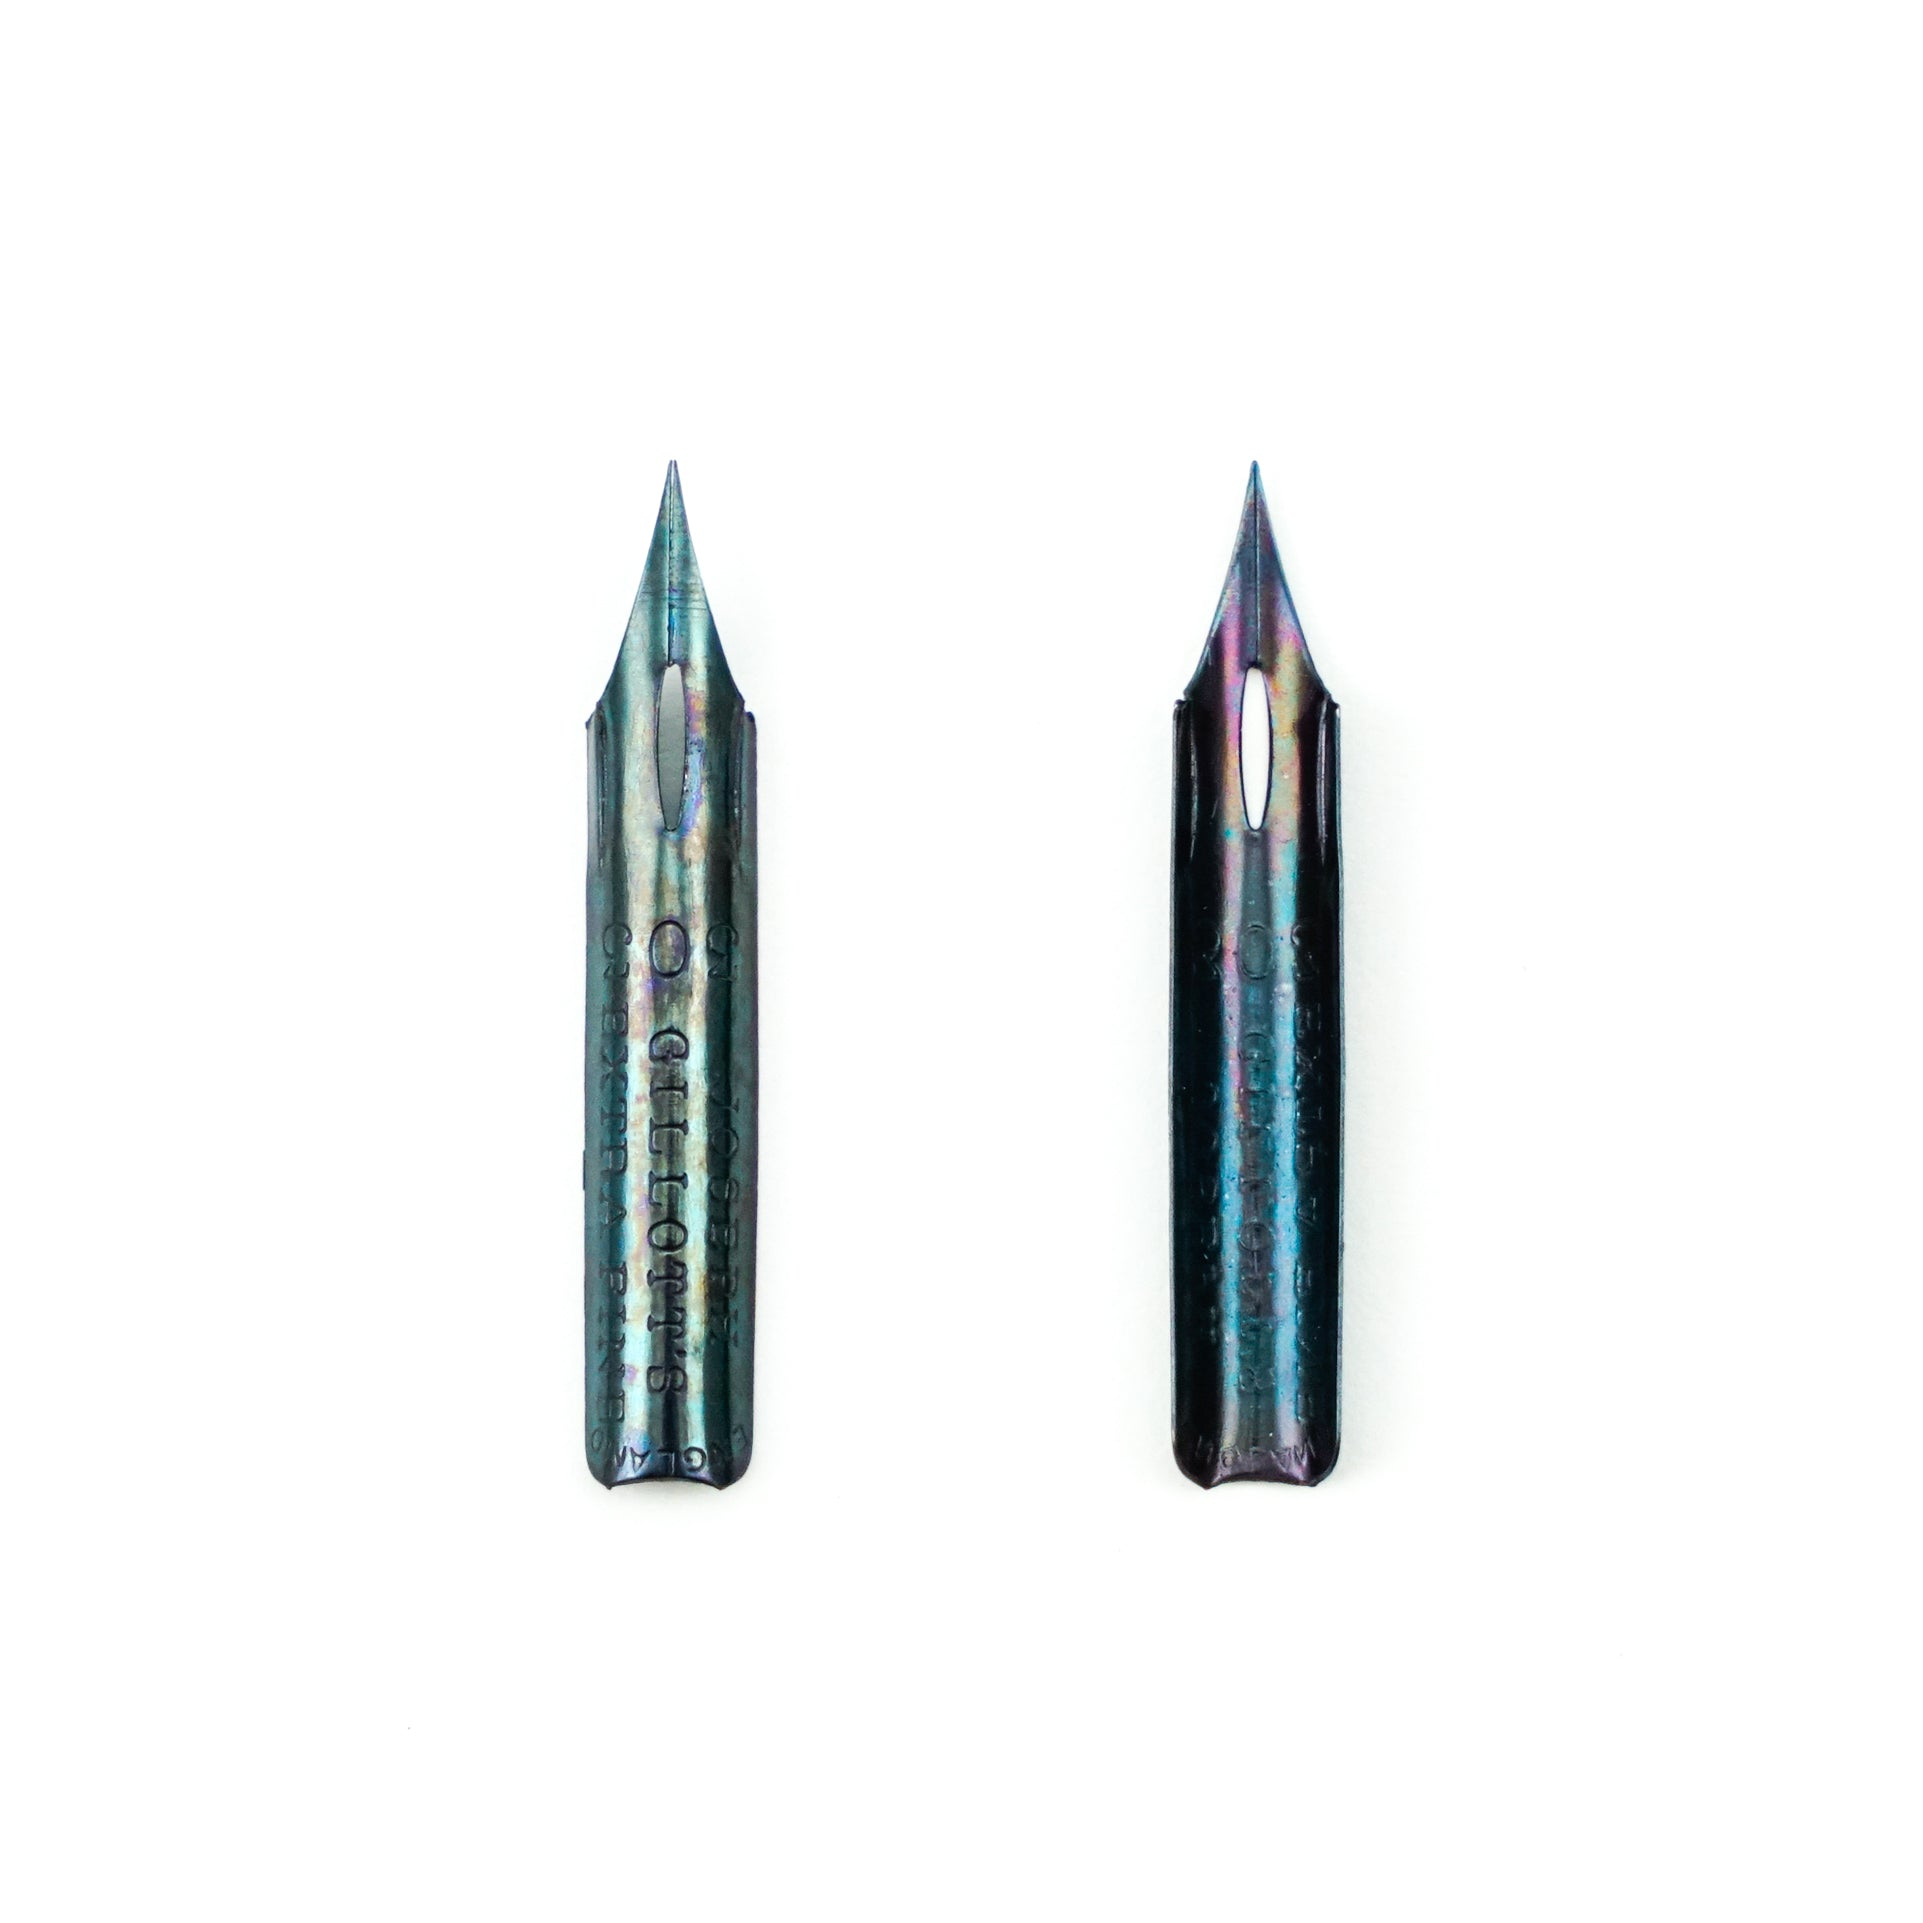 Gillott Pointed Nib for Drawing and Calligraphy - 2/pk - by Gillott - K. A. Artist Shop